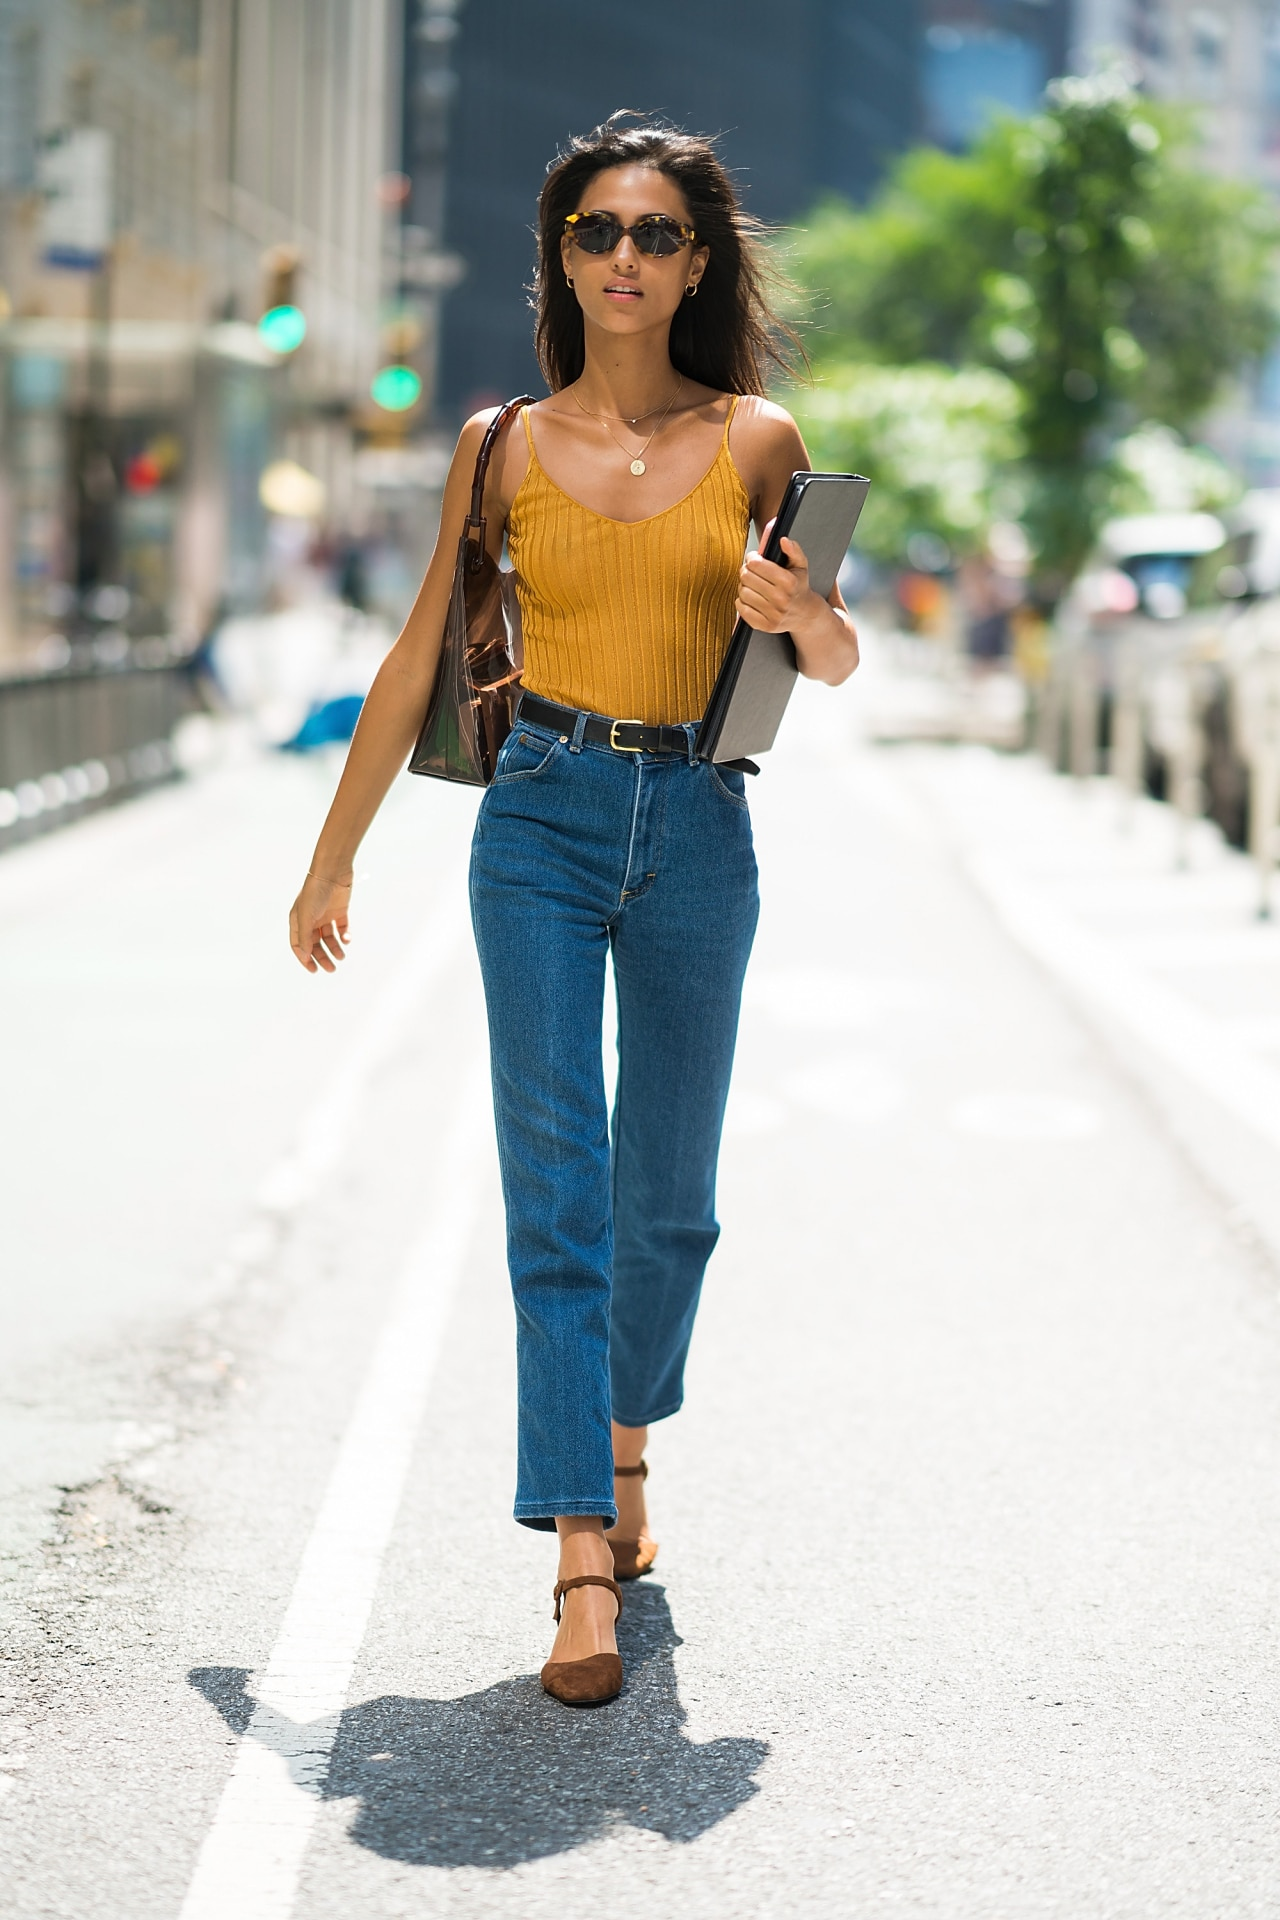 See the best model-off-duty street style looks from the 2018 Victoria's Secret castings